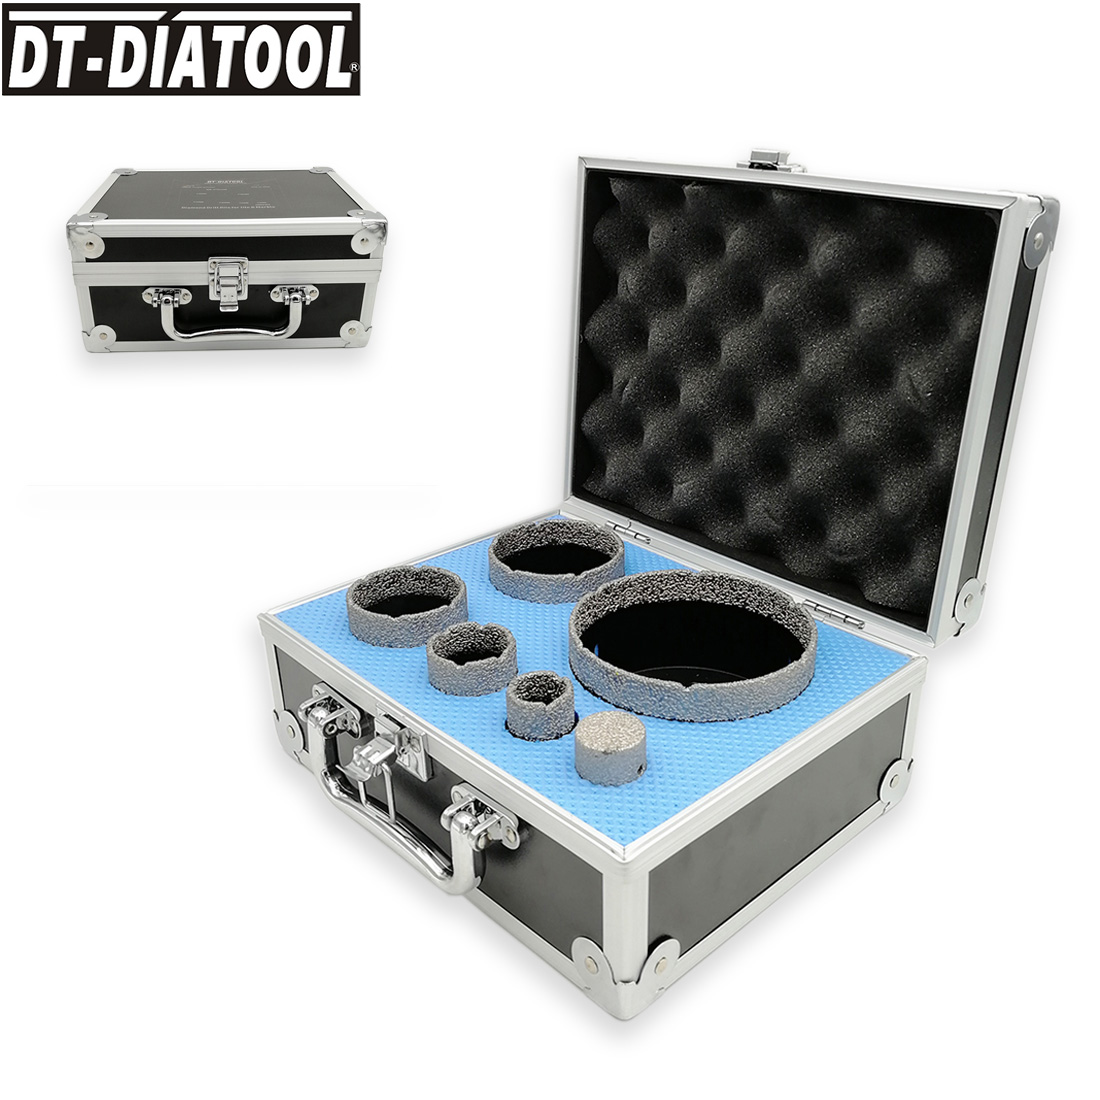 DT-DIATOOL 6pcs/kit Vacuum Brazed Diamond Drilling Core Bits Sets 5/8-11 Thread Hole Saw Mixed Size Plus 25mm Finger Bits Tile